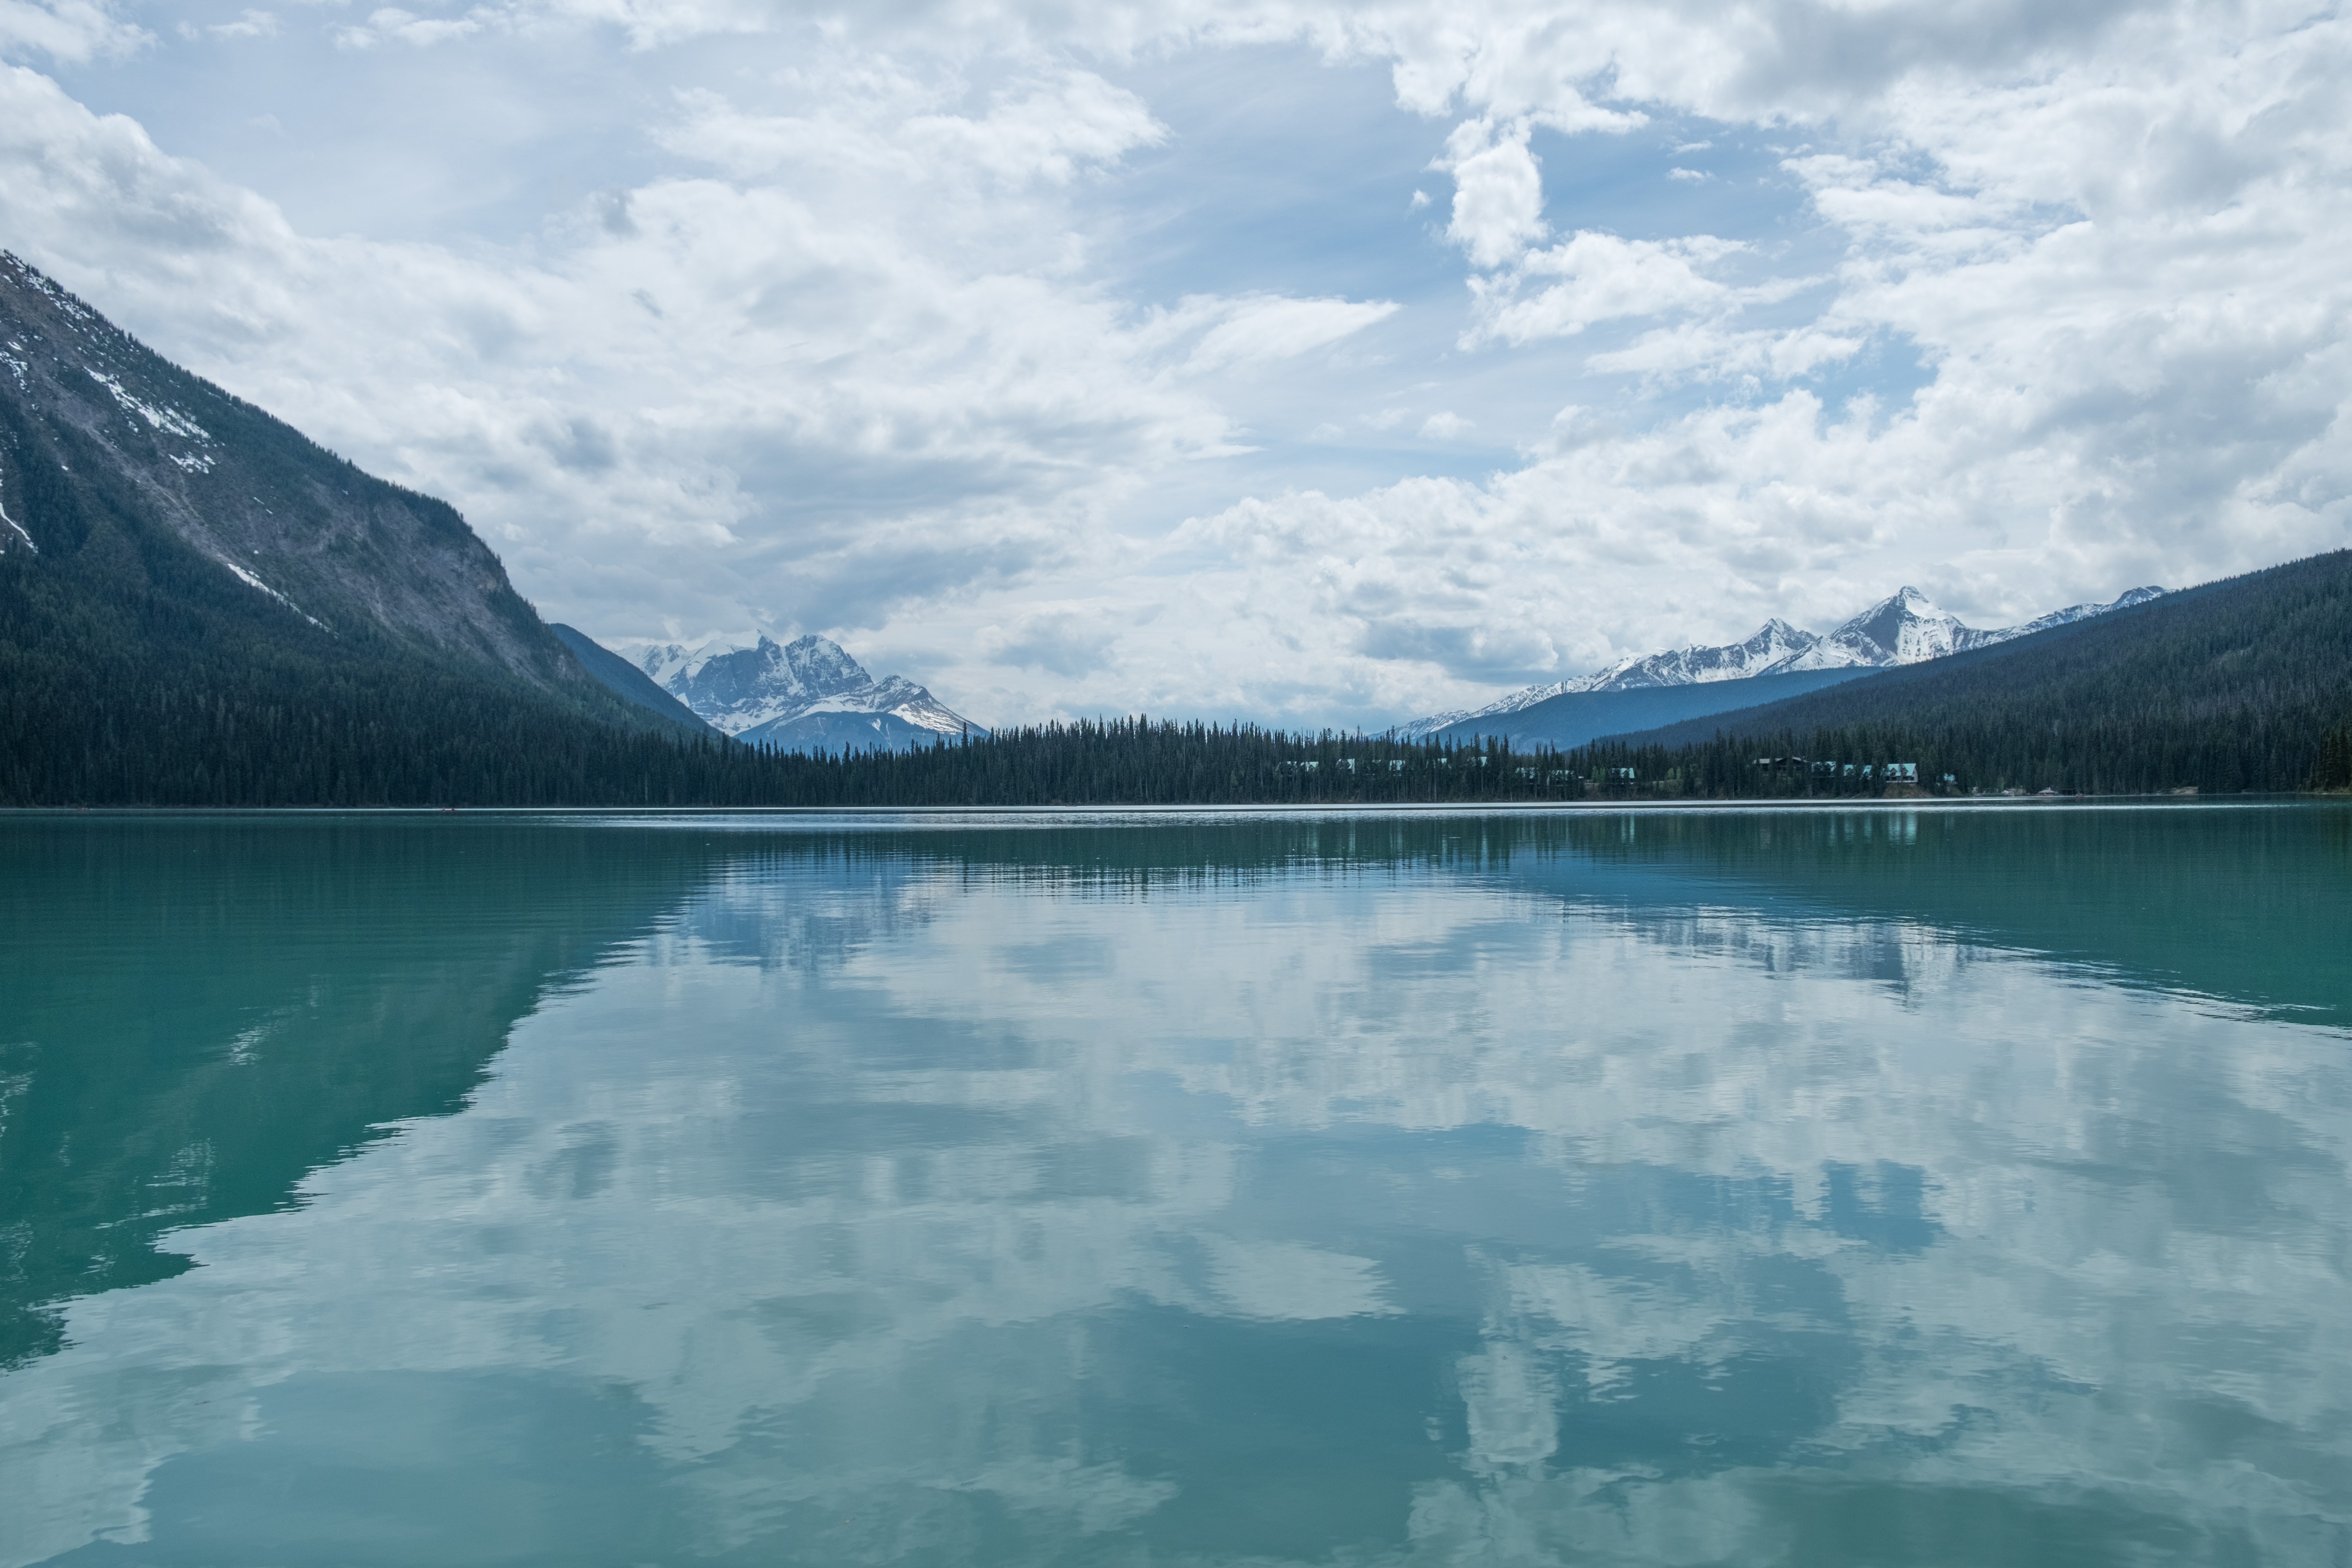 Emerald Lake by the3dman